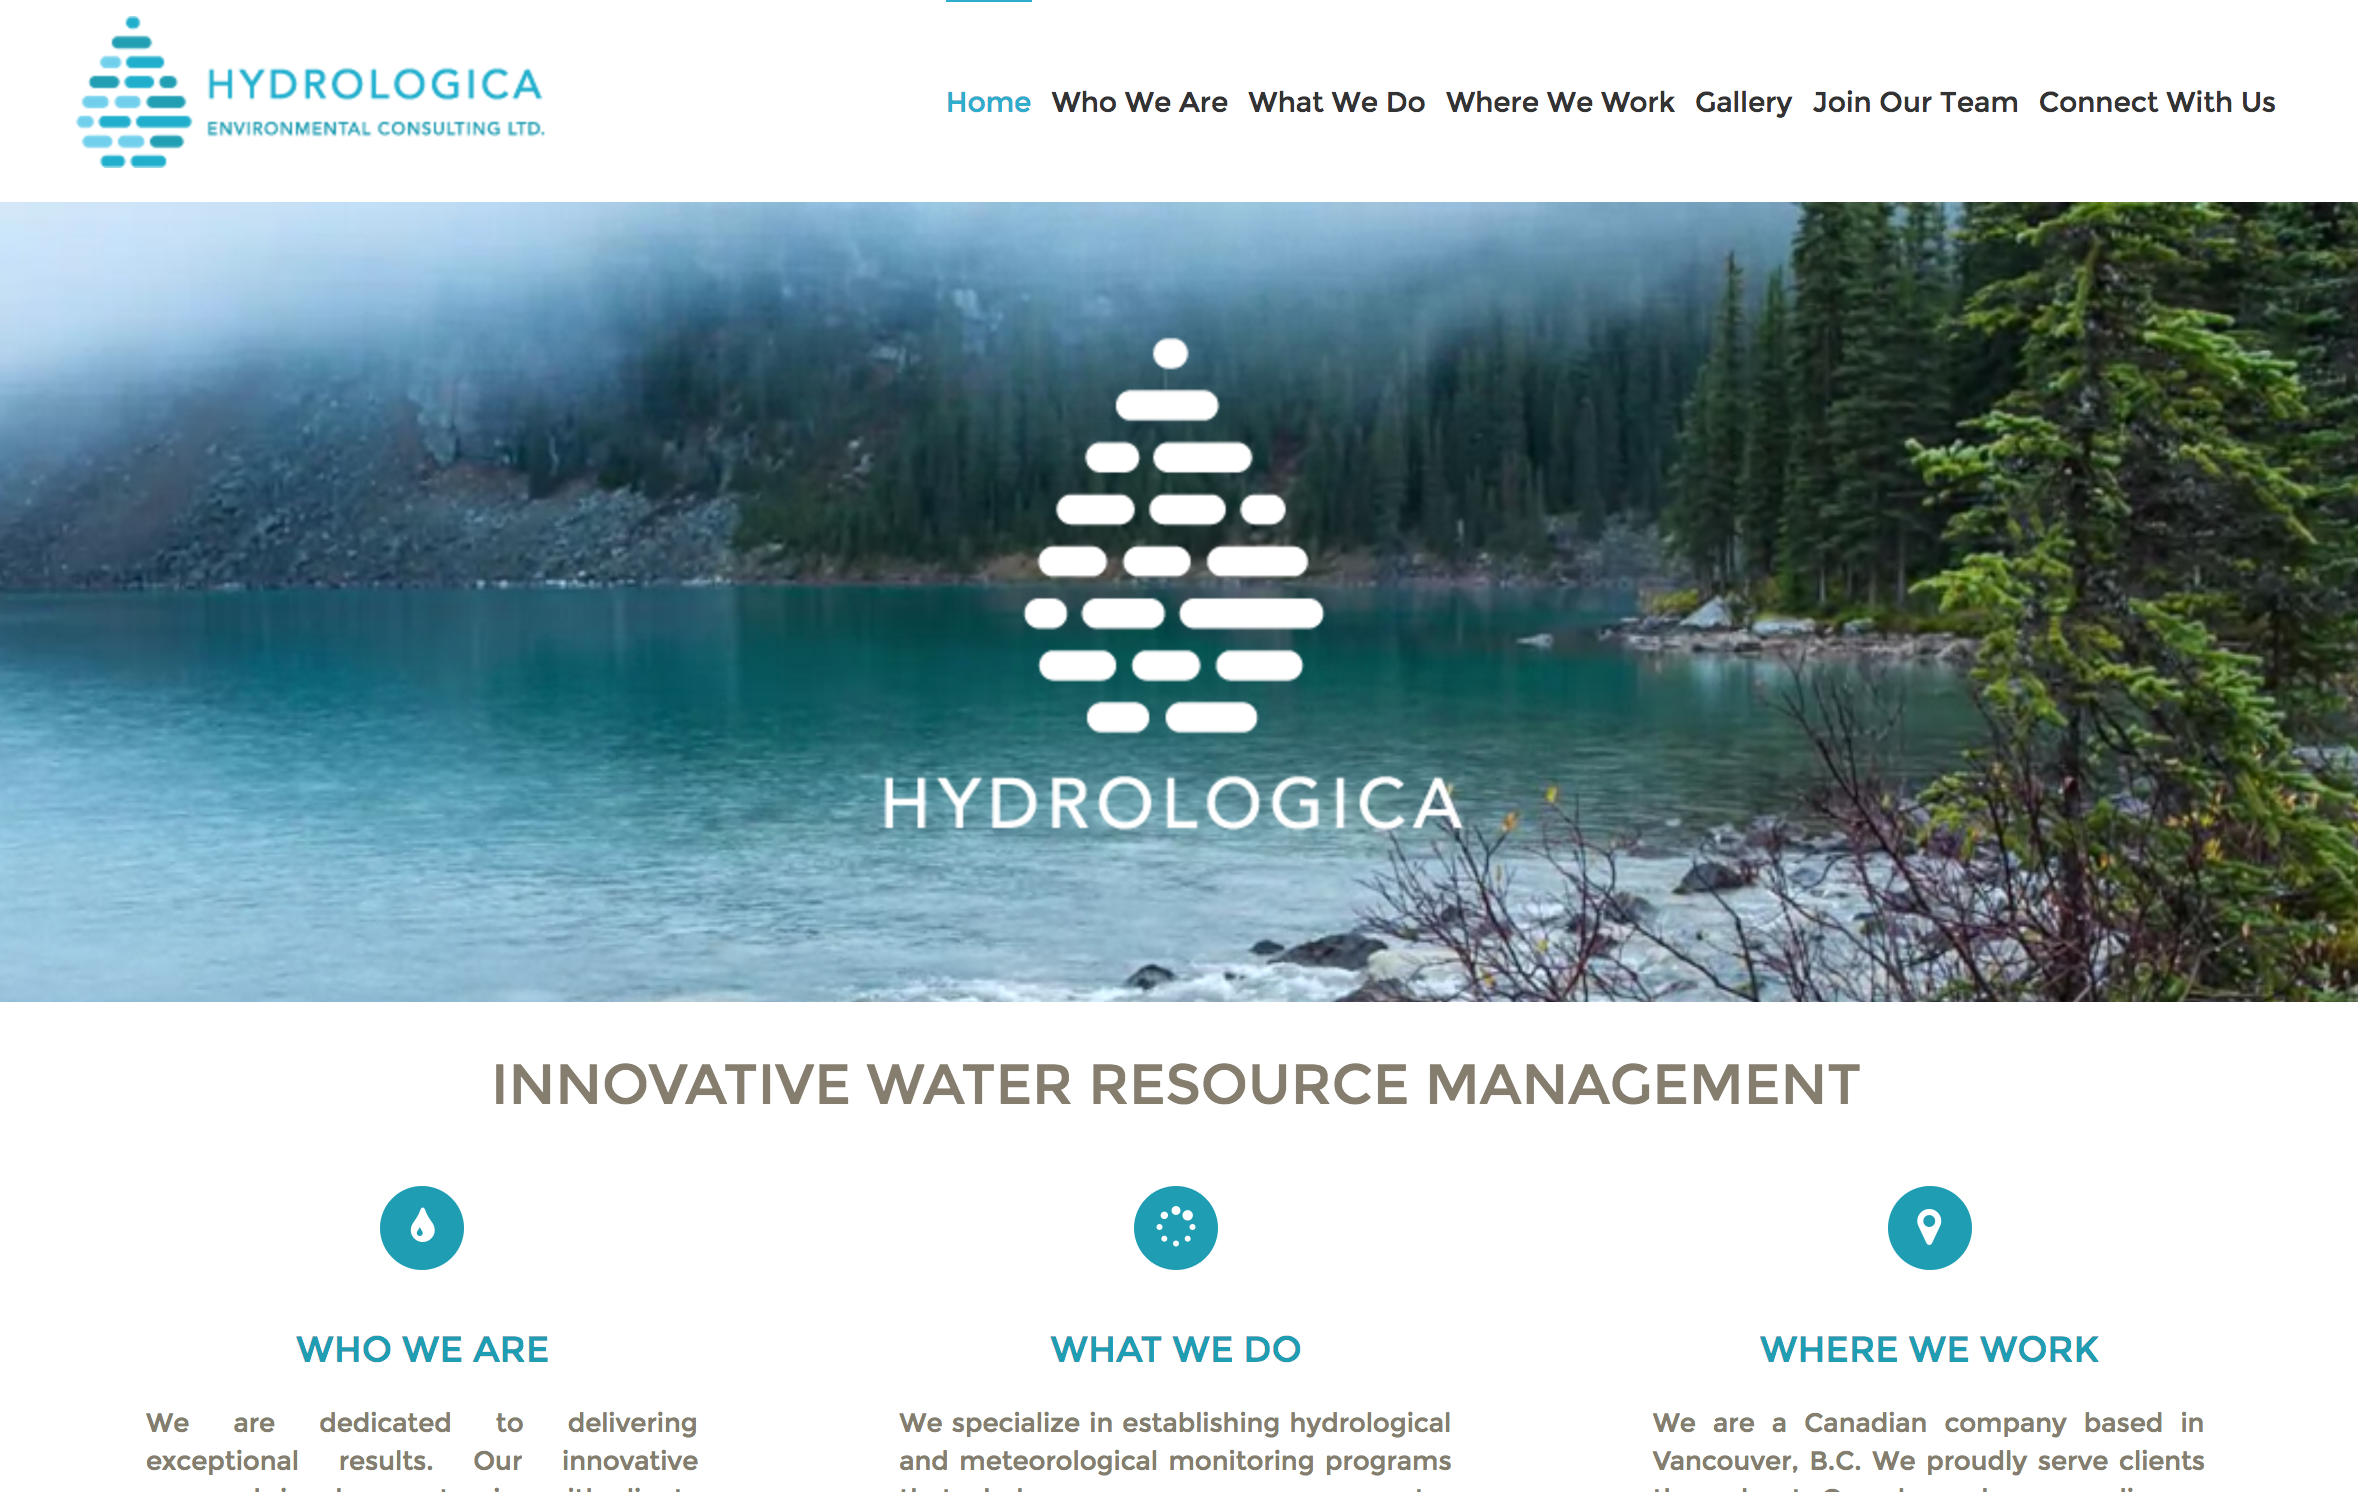 Environmental Consulting site built with Wordpress